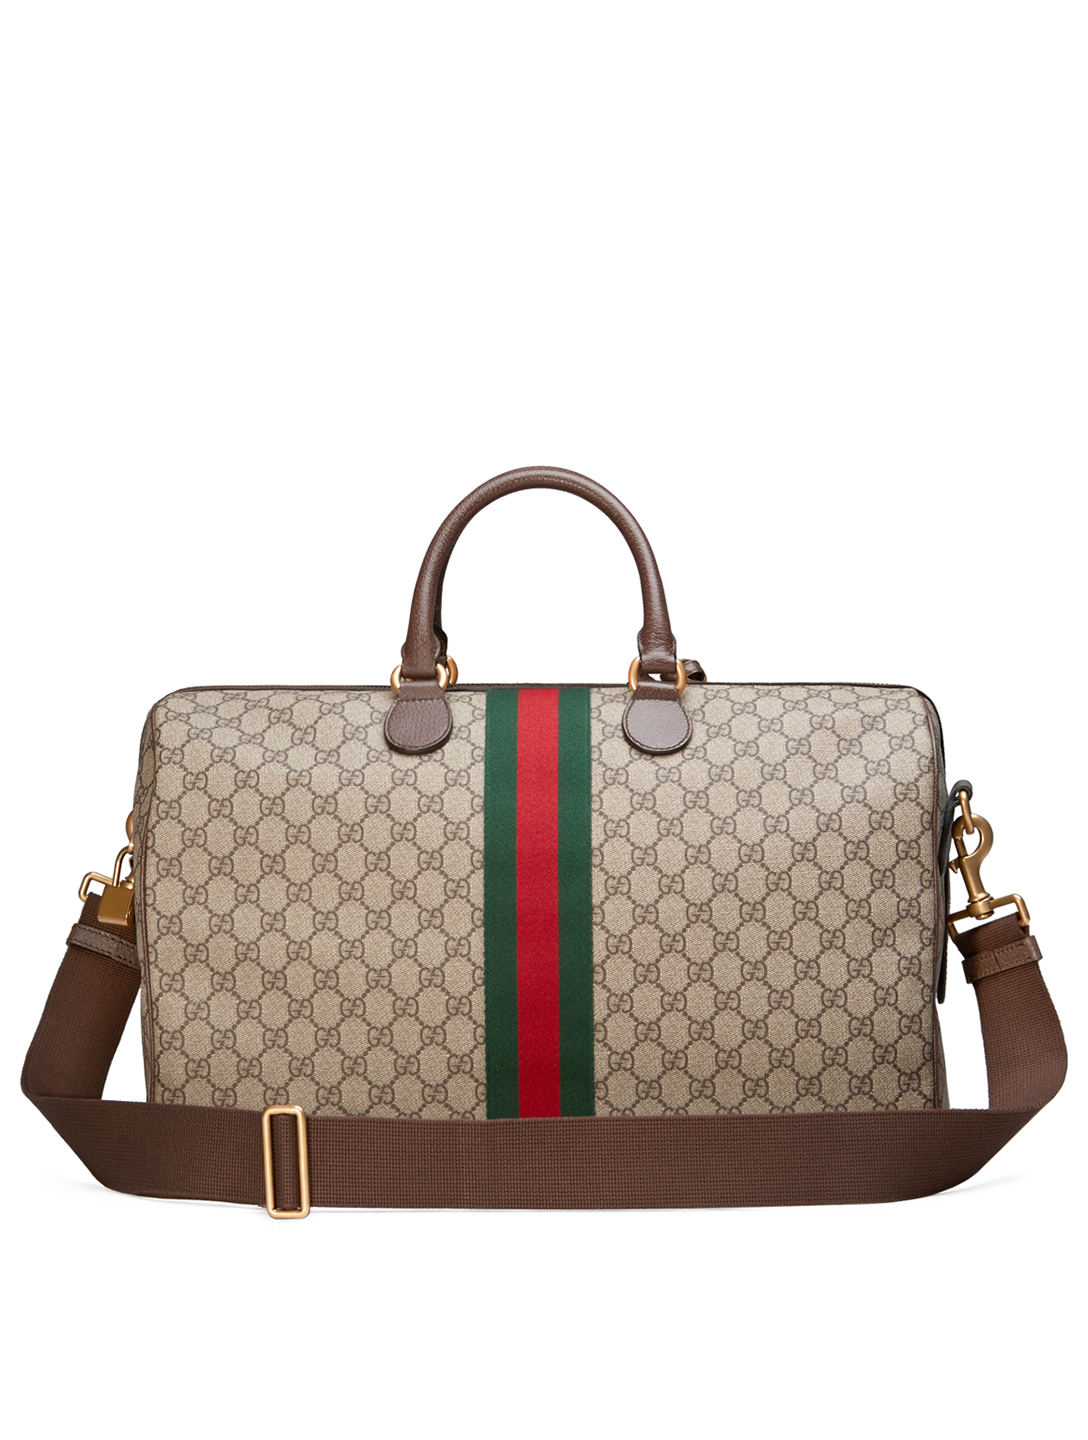 GUCCI Medium Ophidia GG Supreme Carry-On Duffle Bag Women's Beige